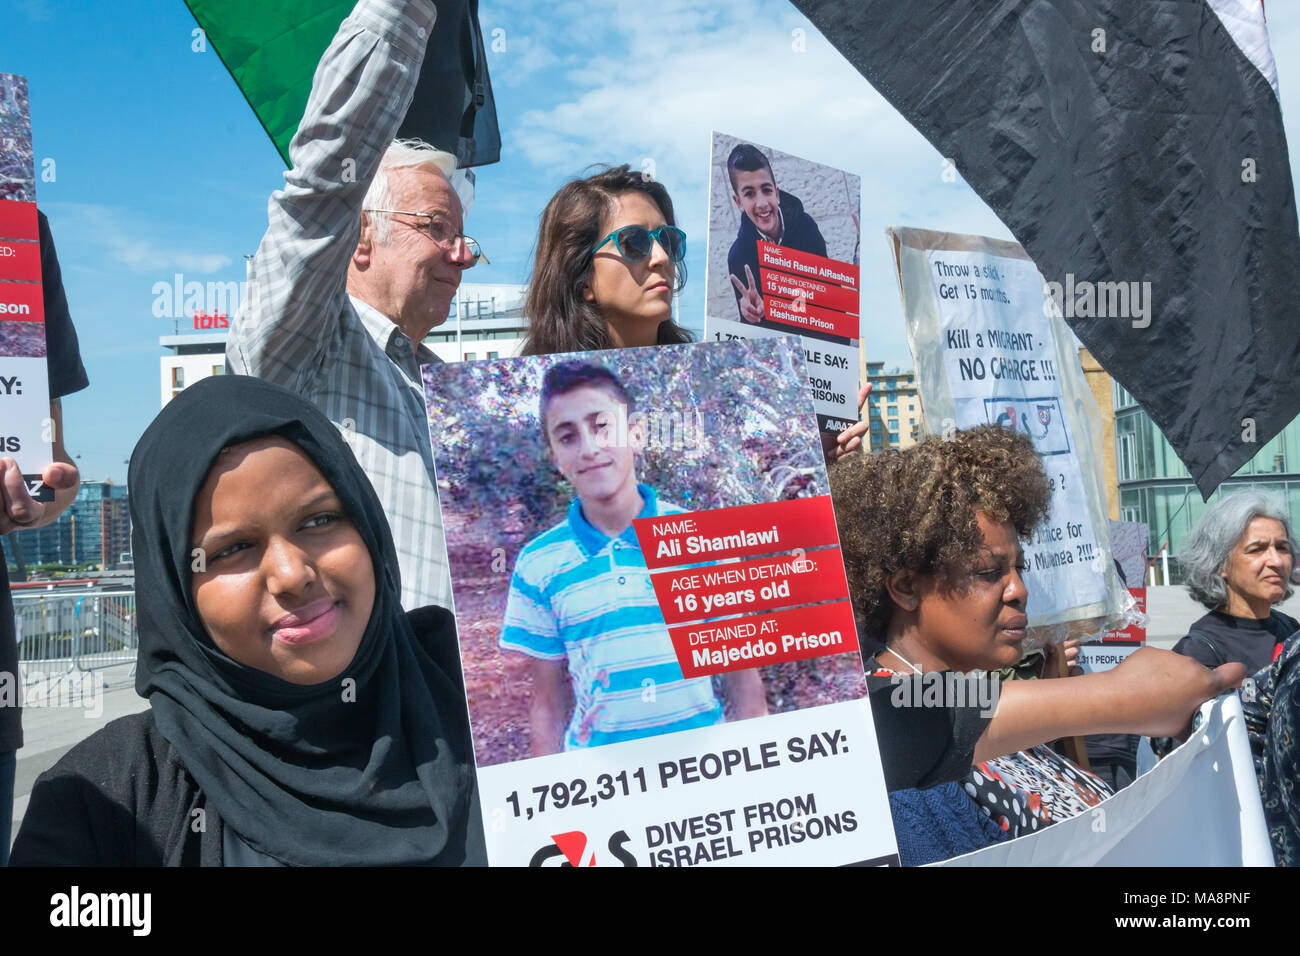 A woman at the Stop G4S protest outside G4S AGM at Excel London holds an Avaaz poster of Ali Shamlawi, detained at 16 and held in Majeddo Prison. 1,792,311 people signed the Avaaz petition calling on G4S to stop running Israeli prisons. Stock Photo